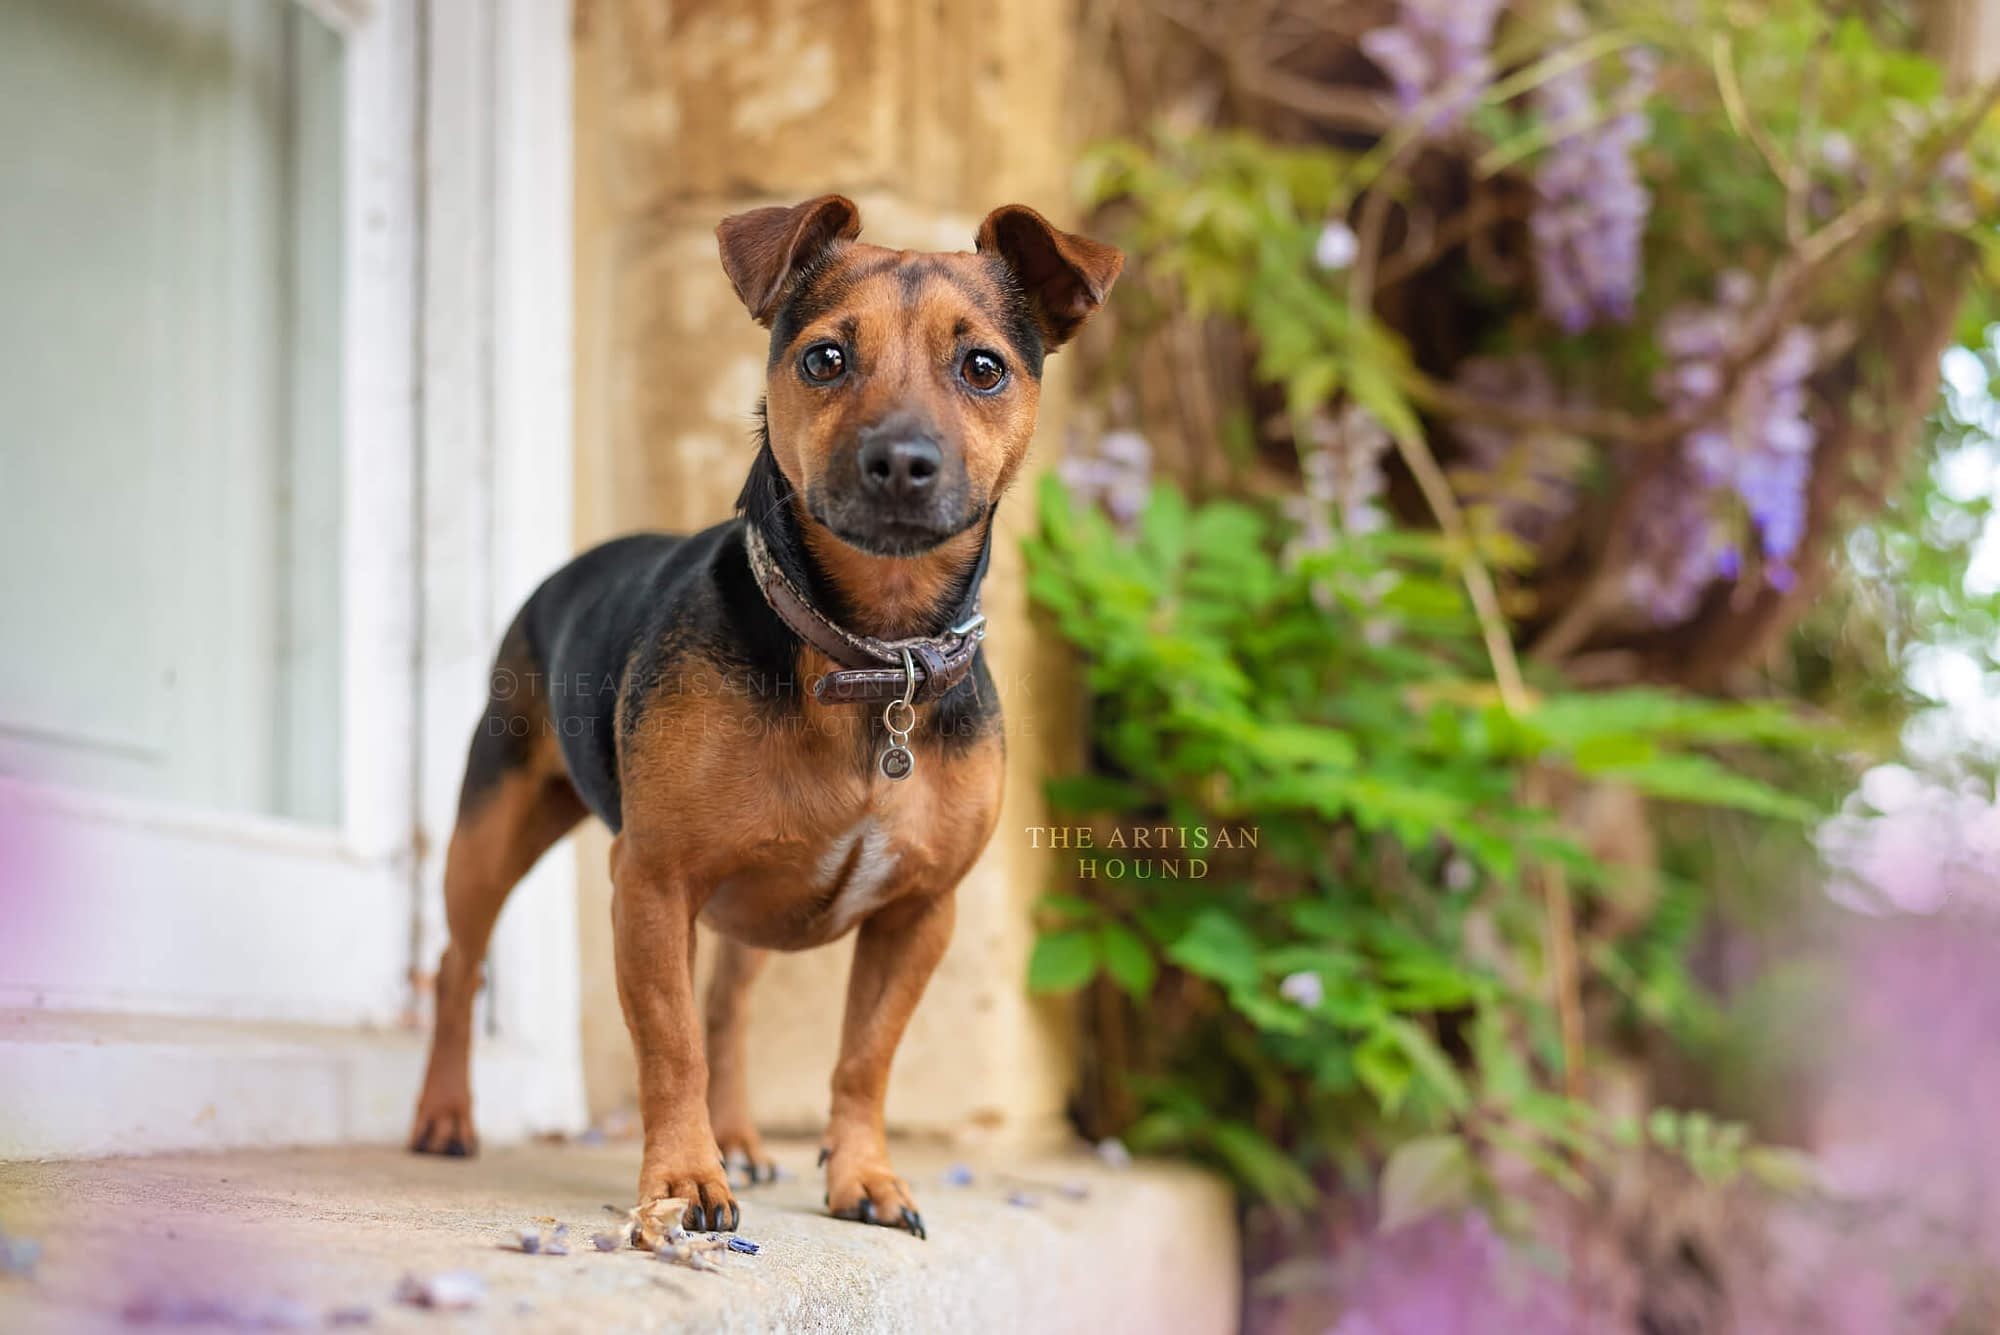 Jack Russell dog standing on window sill with wisteria tree